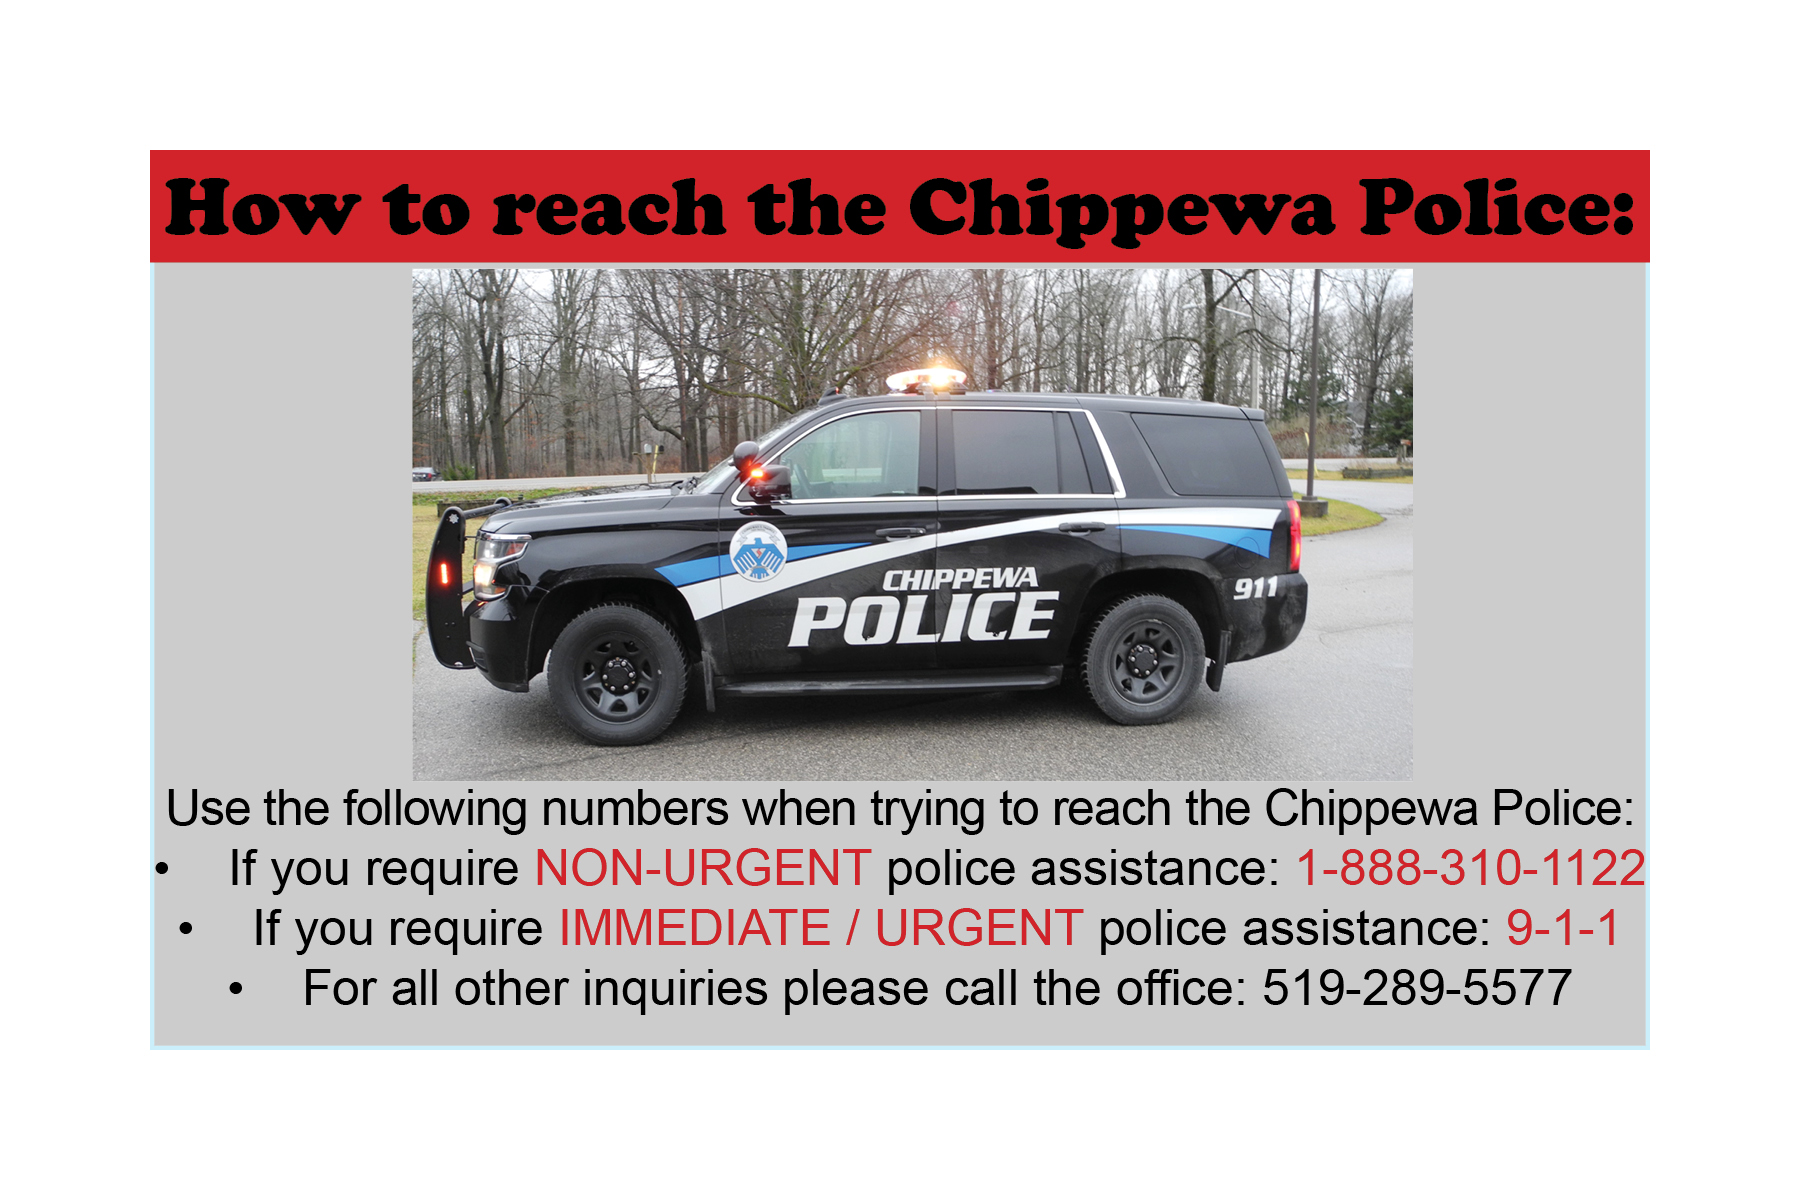 How to reach the Chippewa Police information